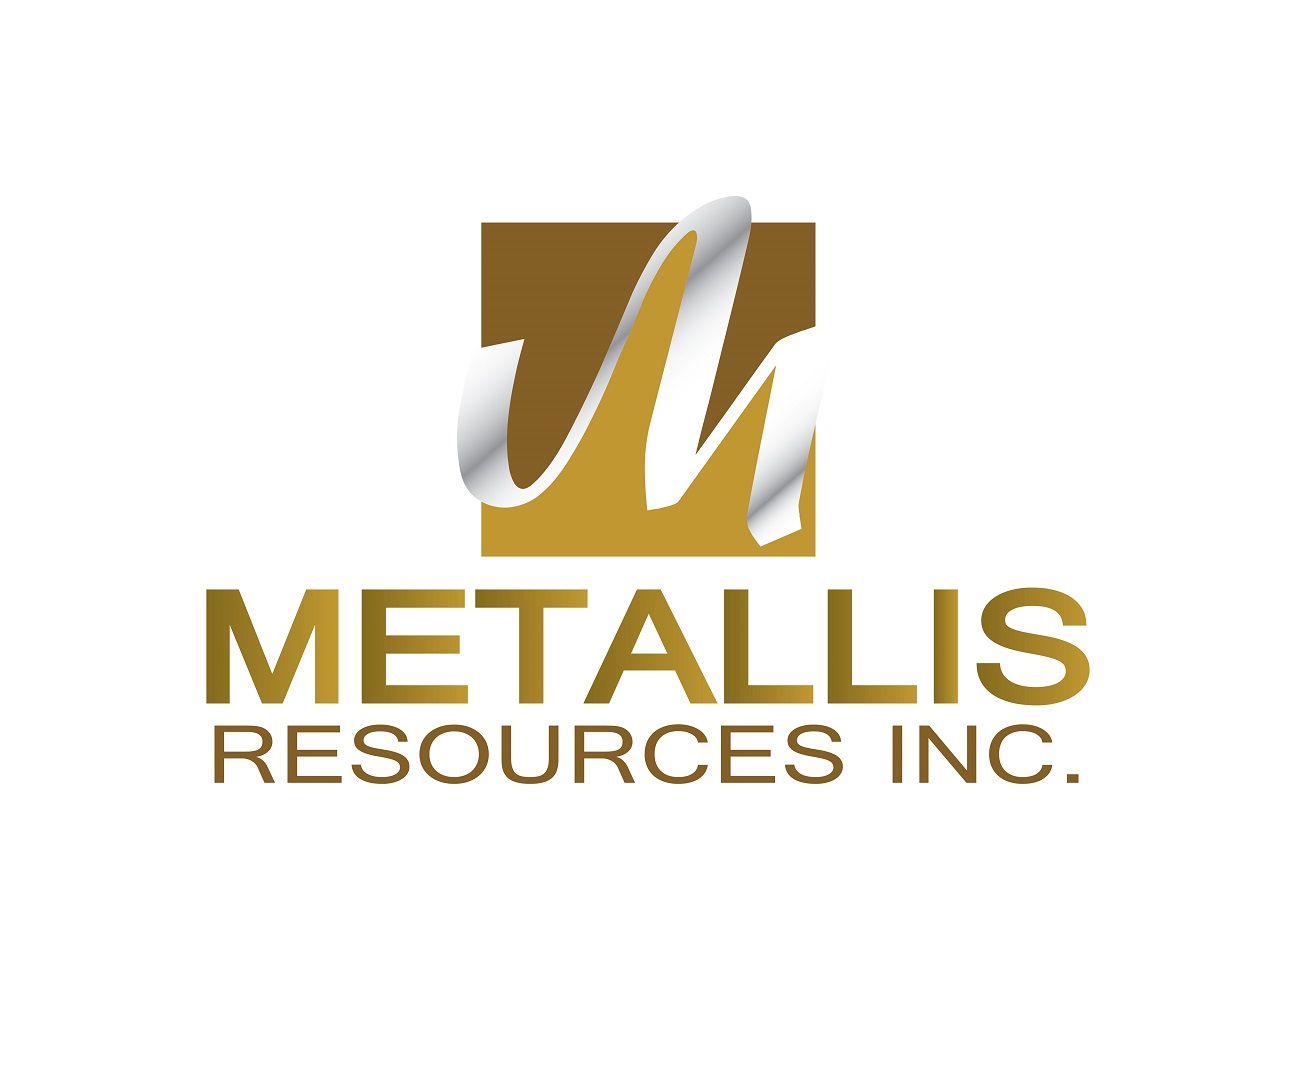 Logo Design by jhunzkie24 - Entry No. 68 in the Logo Design Contest Metallis Resources Inc Logo Design.